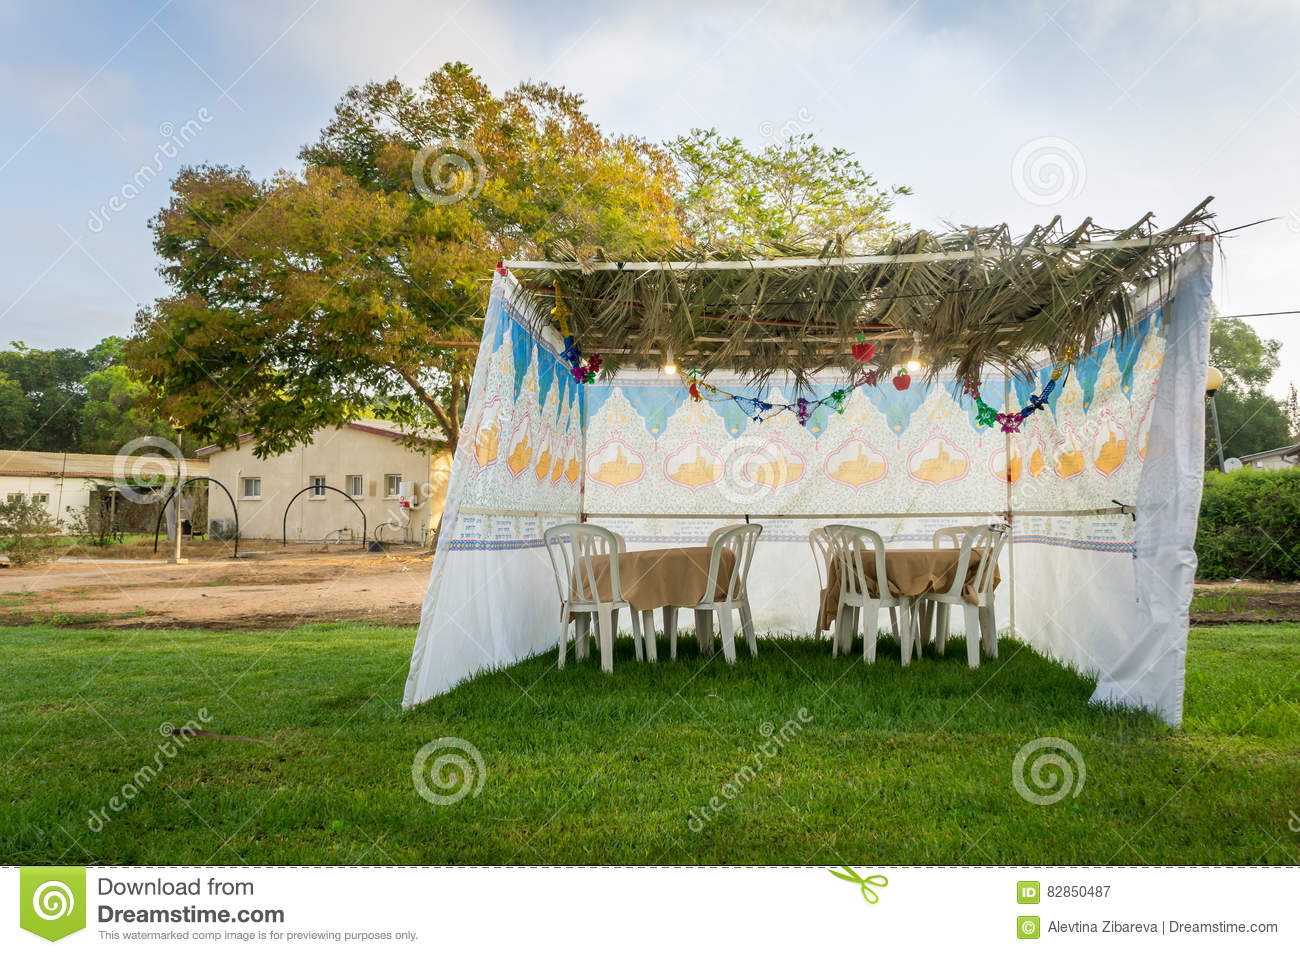 Royalty-Free Stock Photo & Sukkah - Symbolic Temporary Hut For Celebration Of Jewish Holiday ...